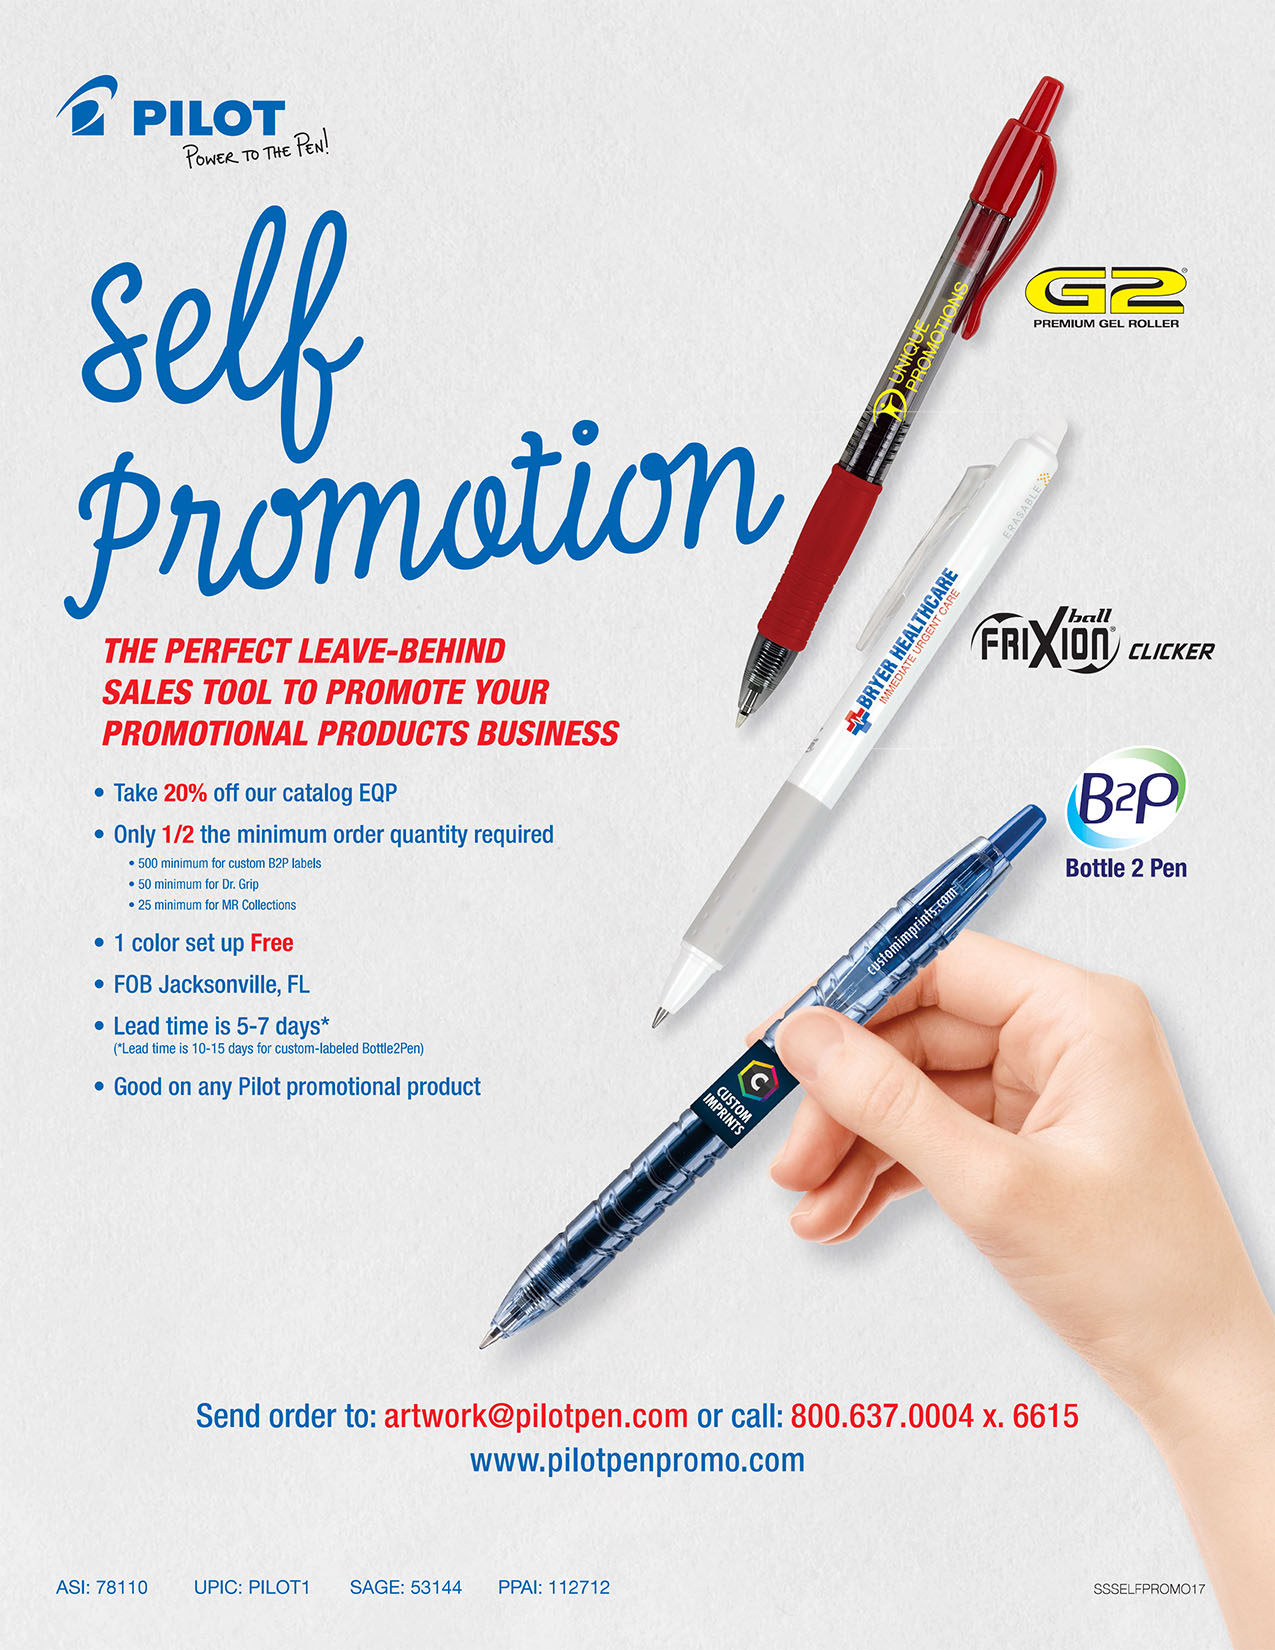 Self Promo Sales Sheet - 2017 - Pilot Promotional Products.jpg